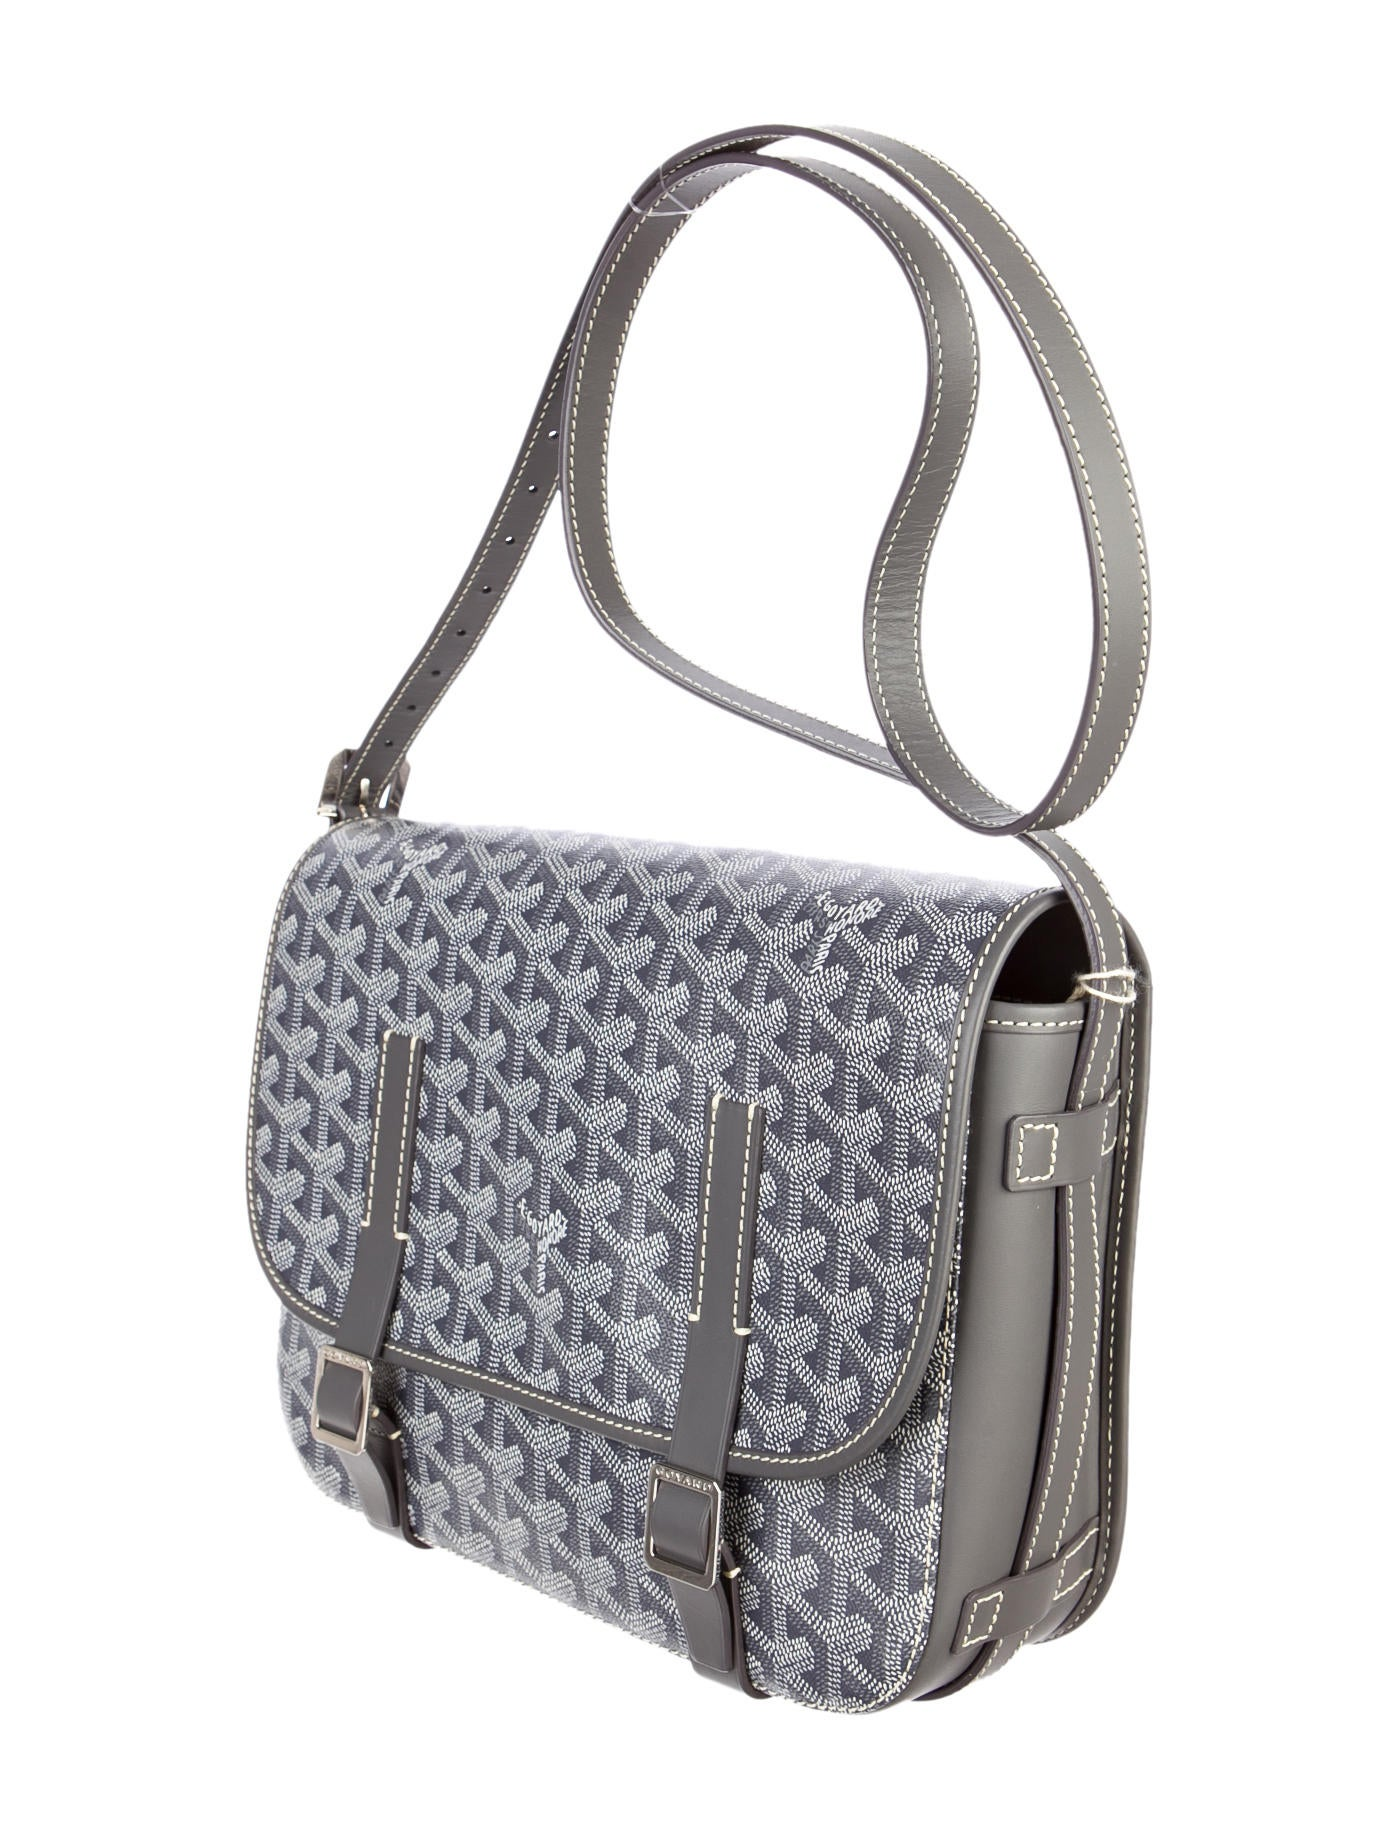 Goyard Belvedere Mm Messenger Handbags Goy20171 The